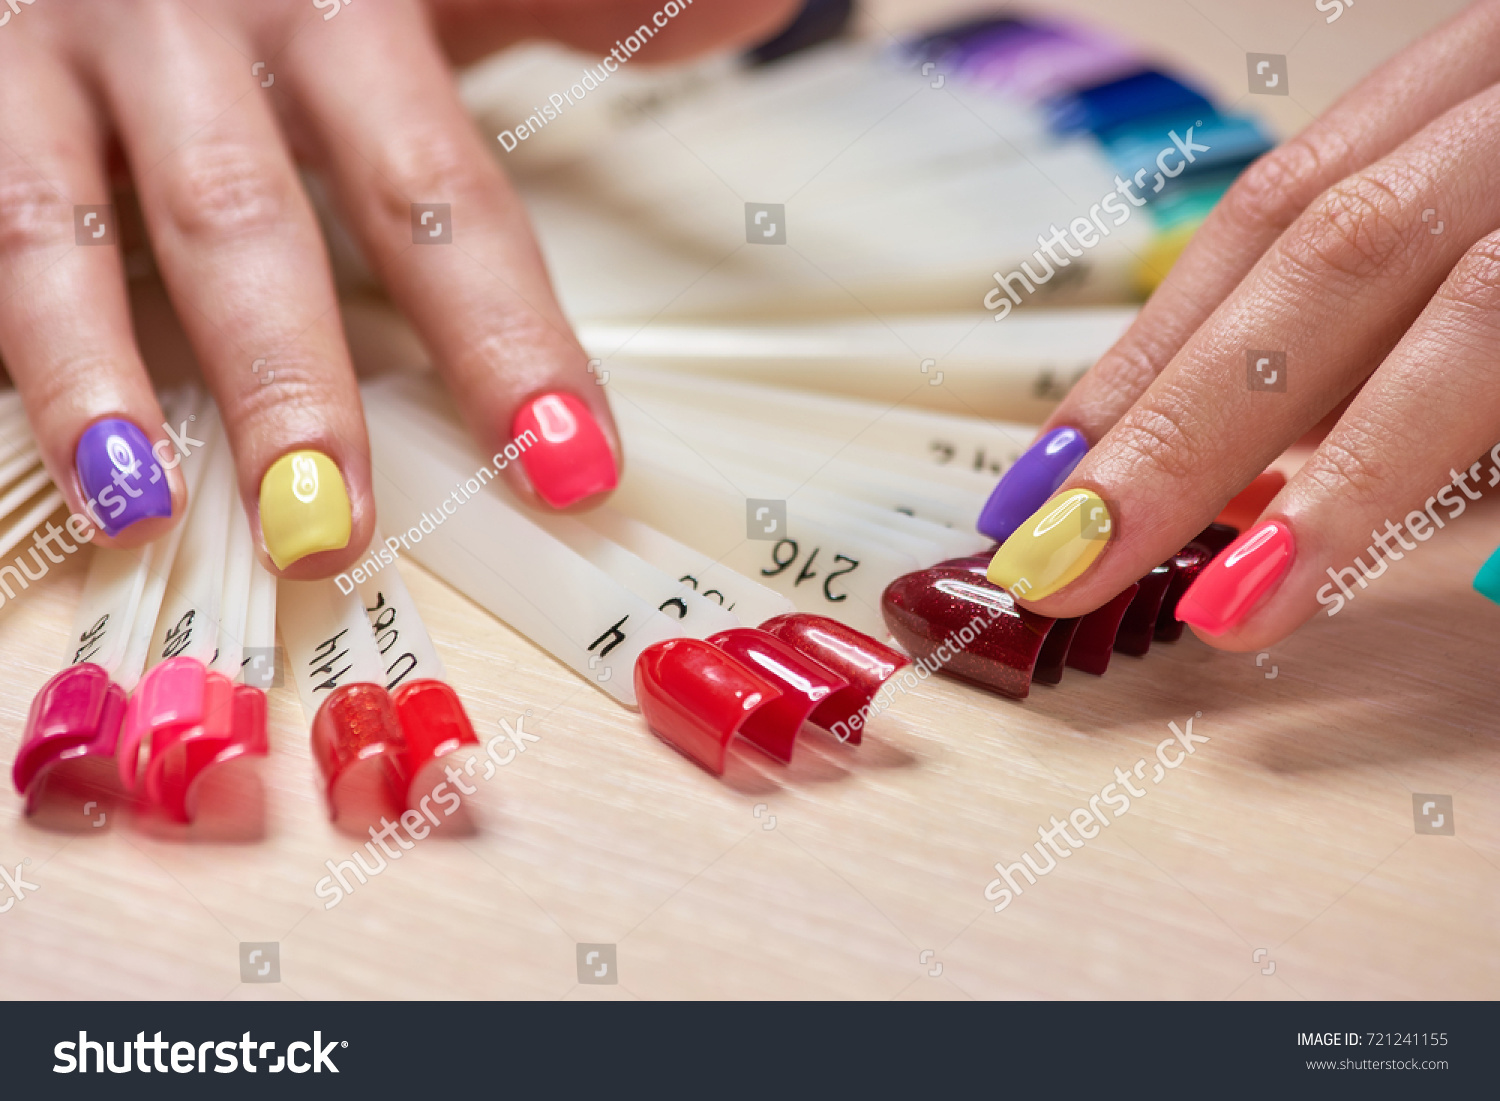 Girls Fingers Multicolored Nails Female Hands Stock Photo (Royalty ...